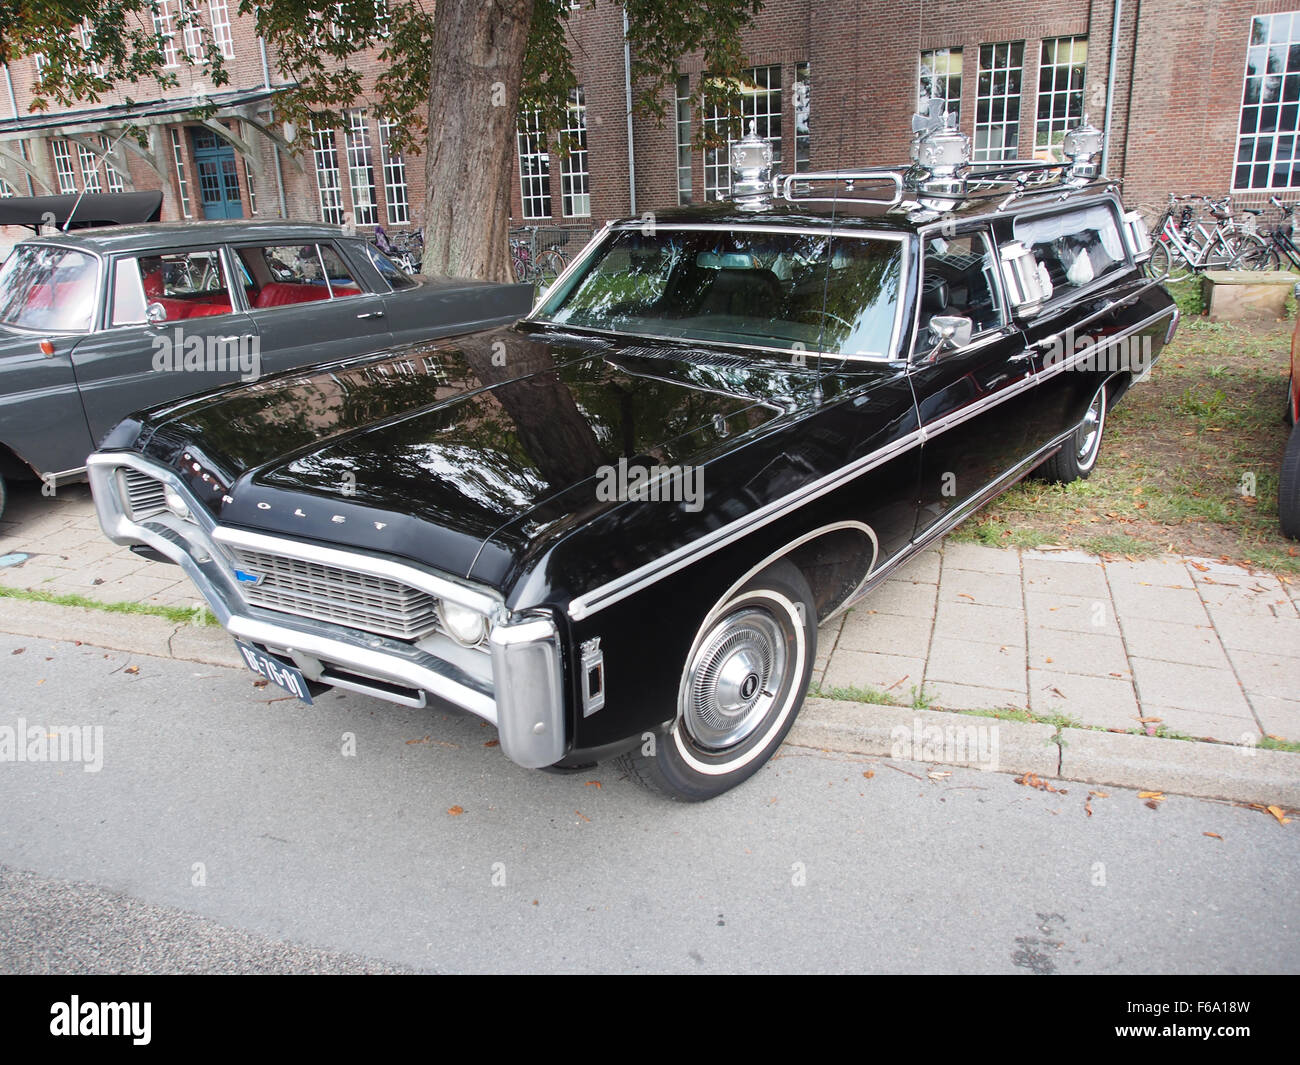 Chevrolet Caprice Stock Photos & Chevrolet Caprice Stock Images - Alamy